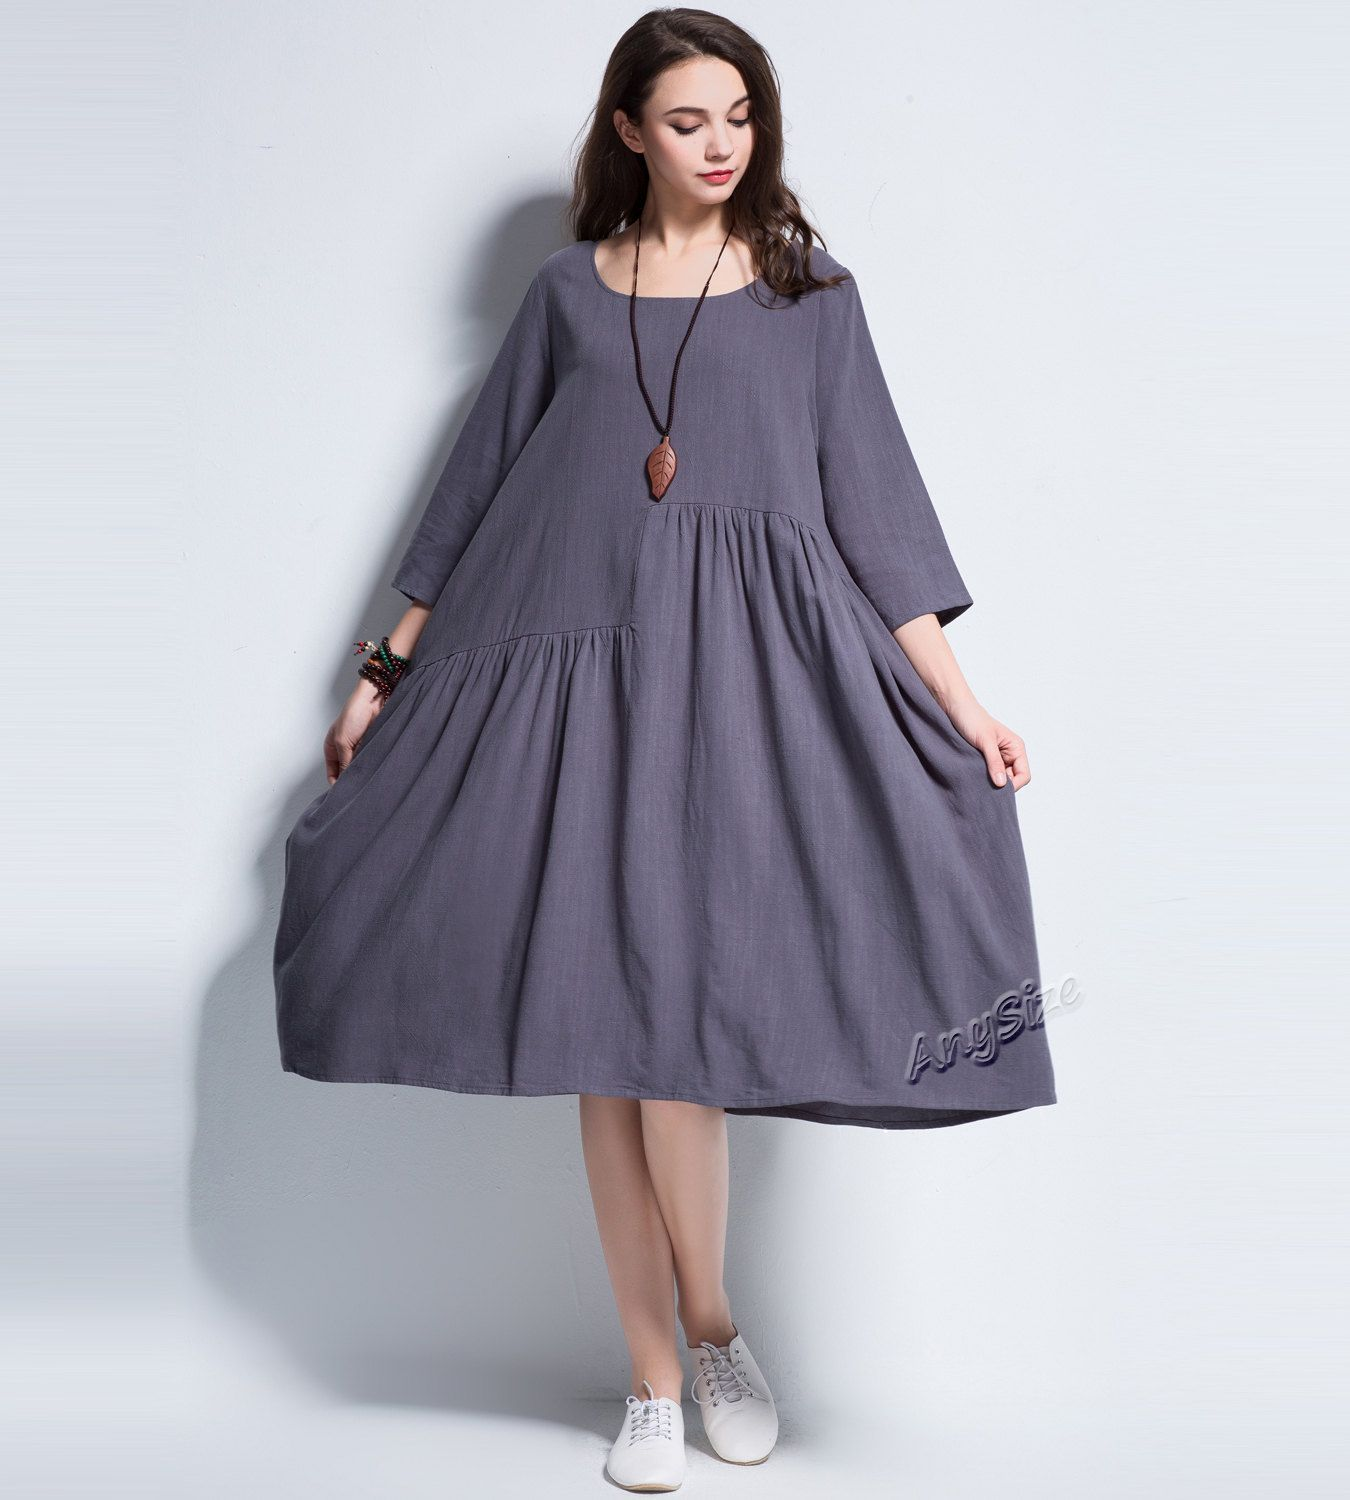 9d1a4a69f3 Anysize Spring Summer soft linen cotton A-line dress plus size dress ...